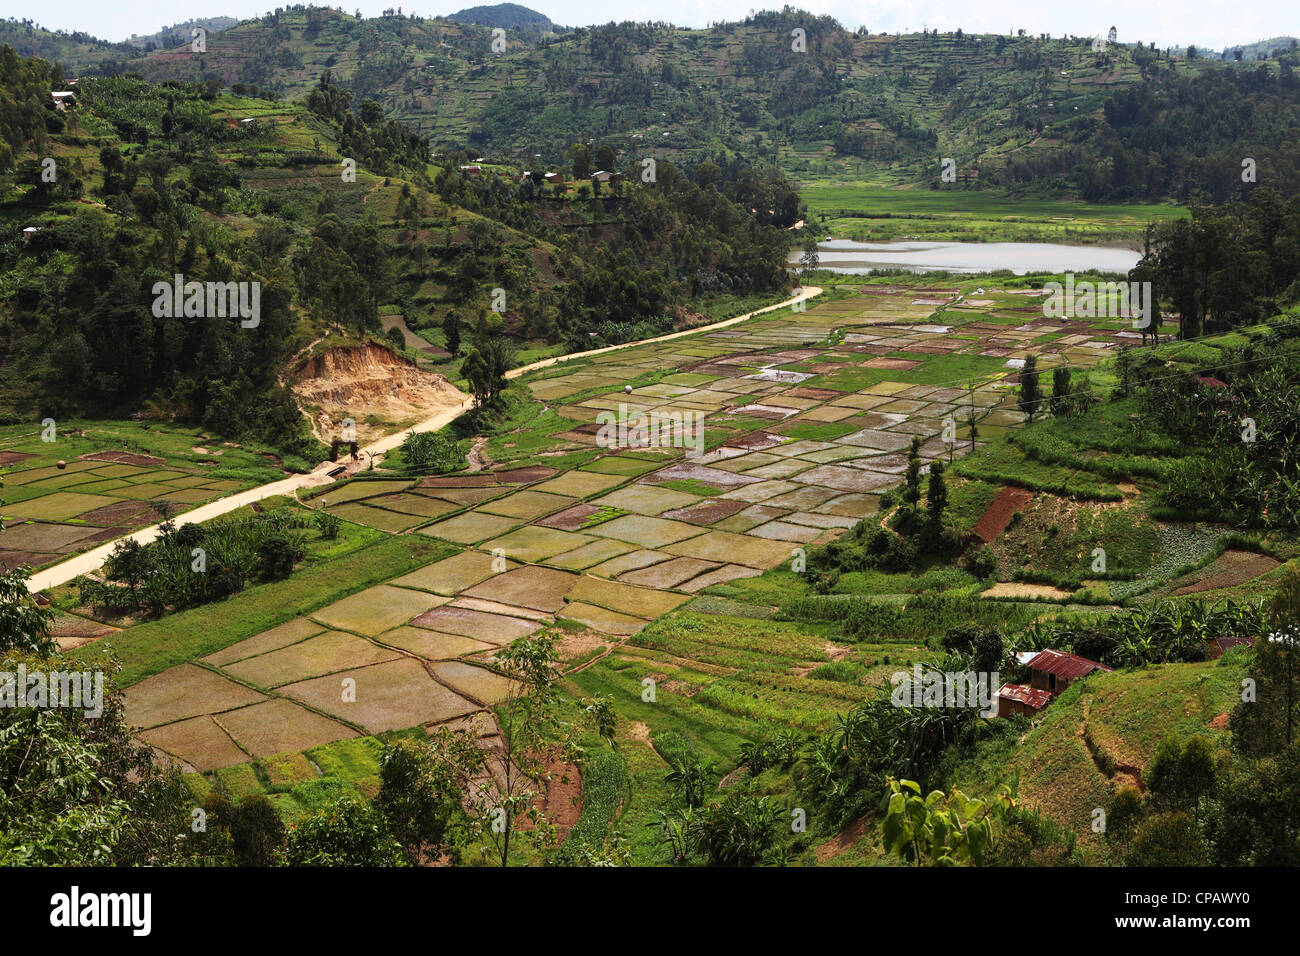 Rice is produced in paddy fields in the Western Province of Rwanda. - Stock Image